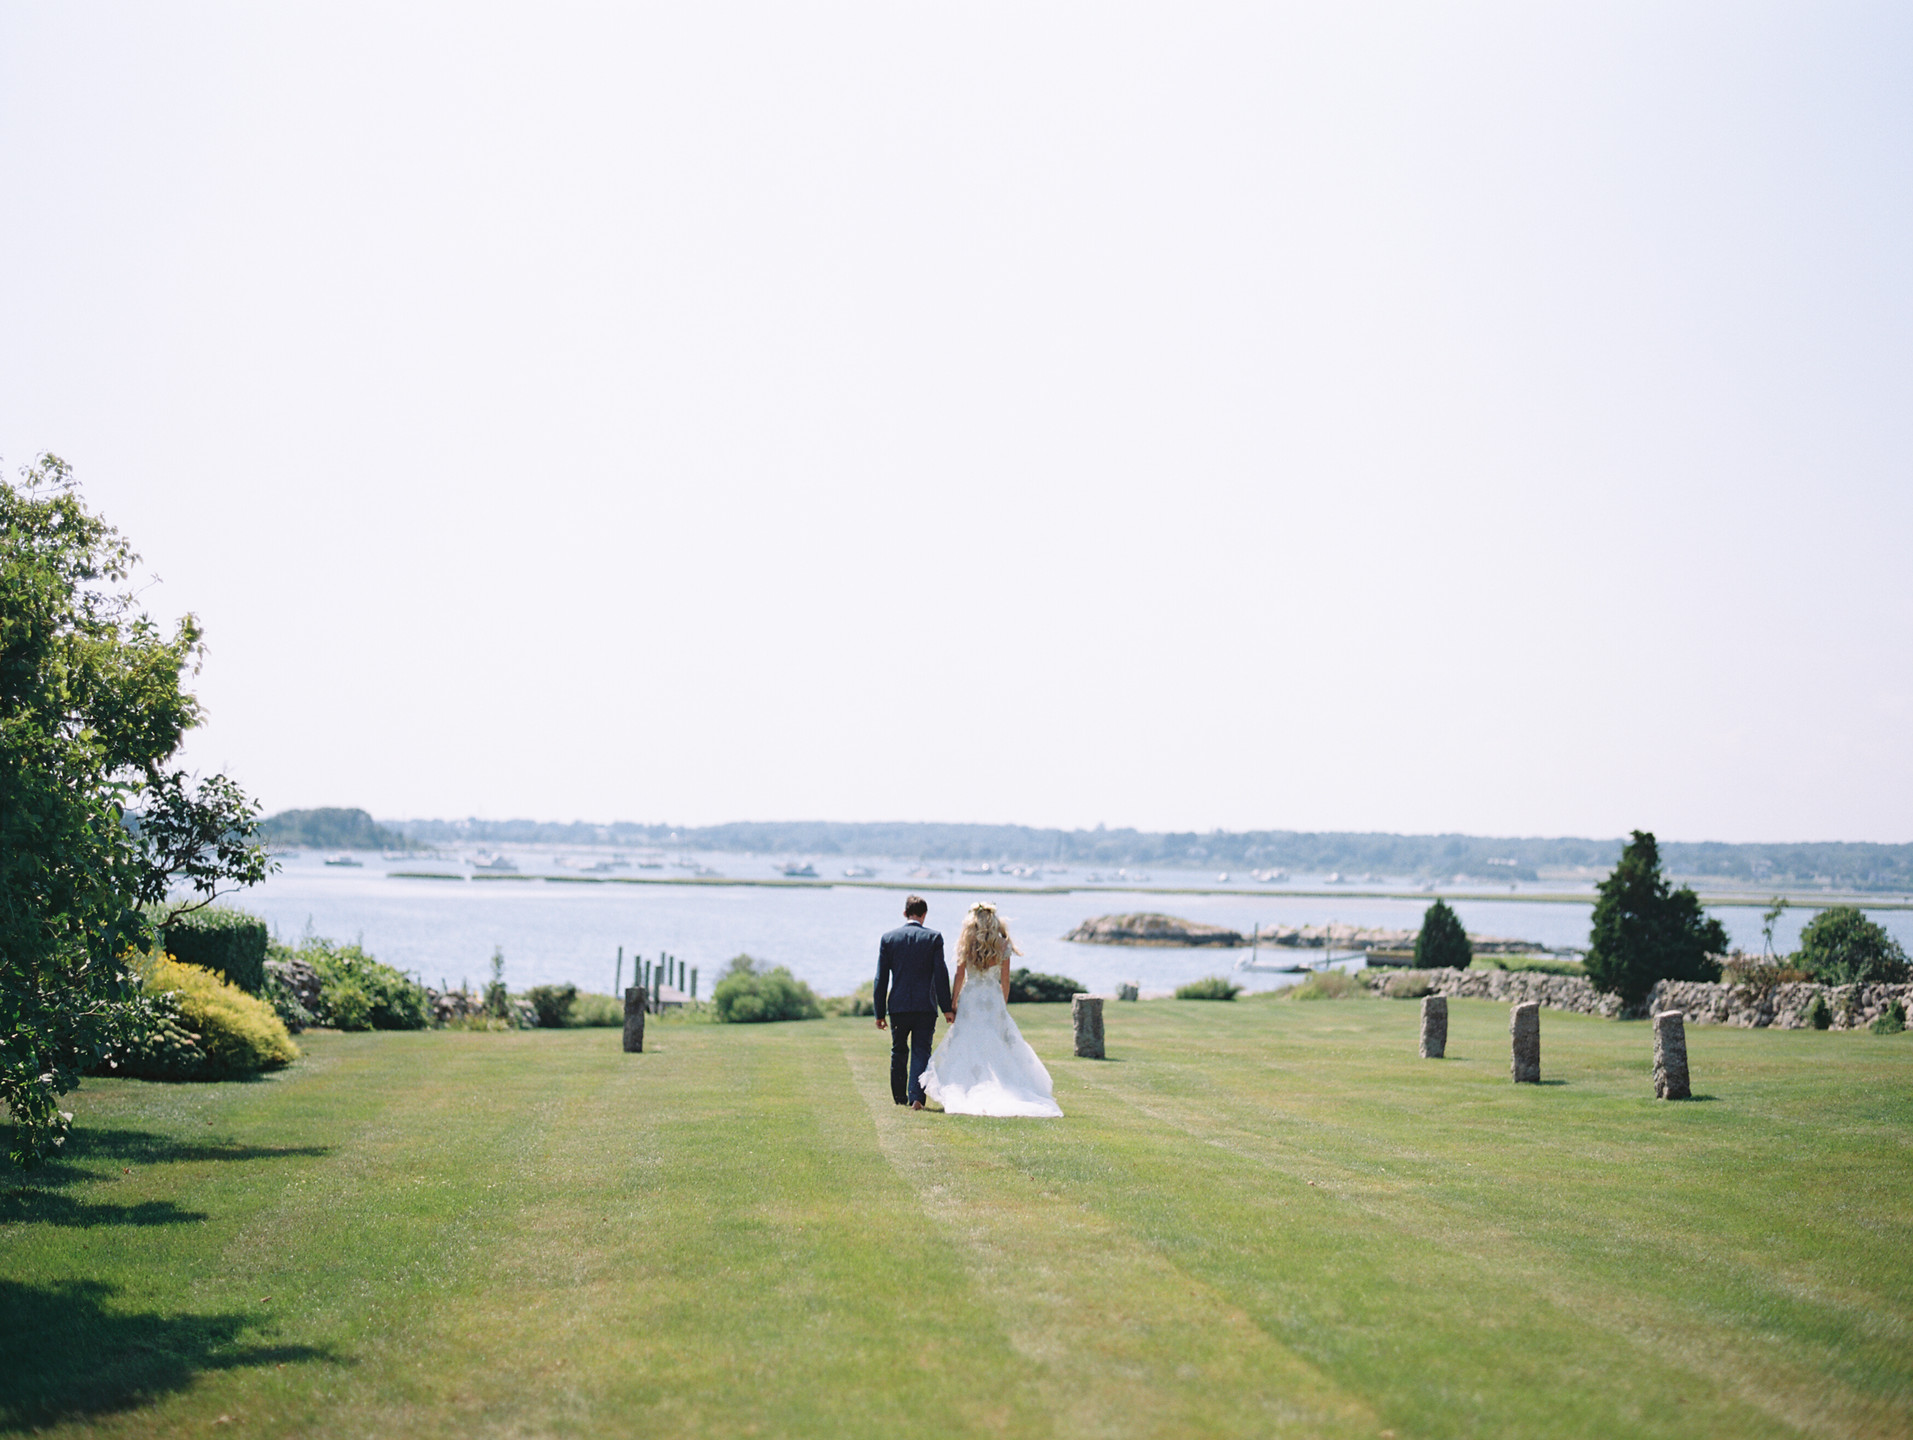 249_Josh+Lindsey_Brumley & Wells_Fine_Art_Film_Photography_Westport_Mass_New_England_Wedding-1926x1440